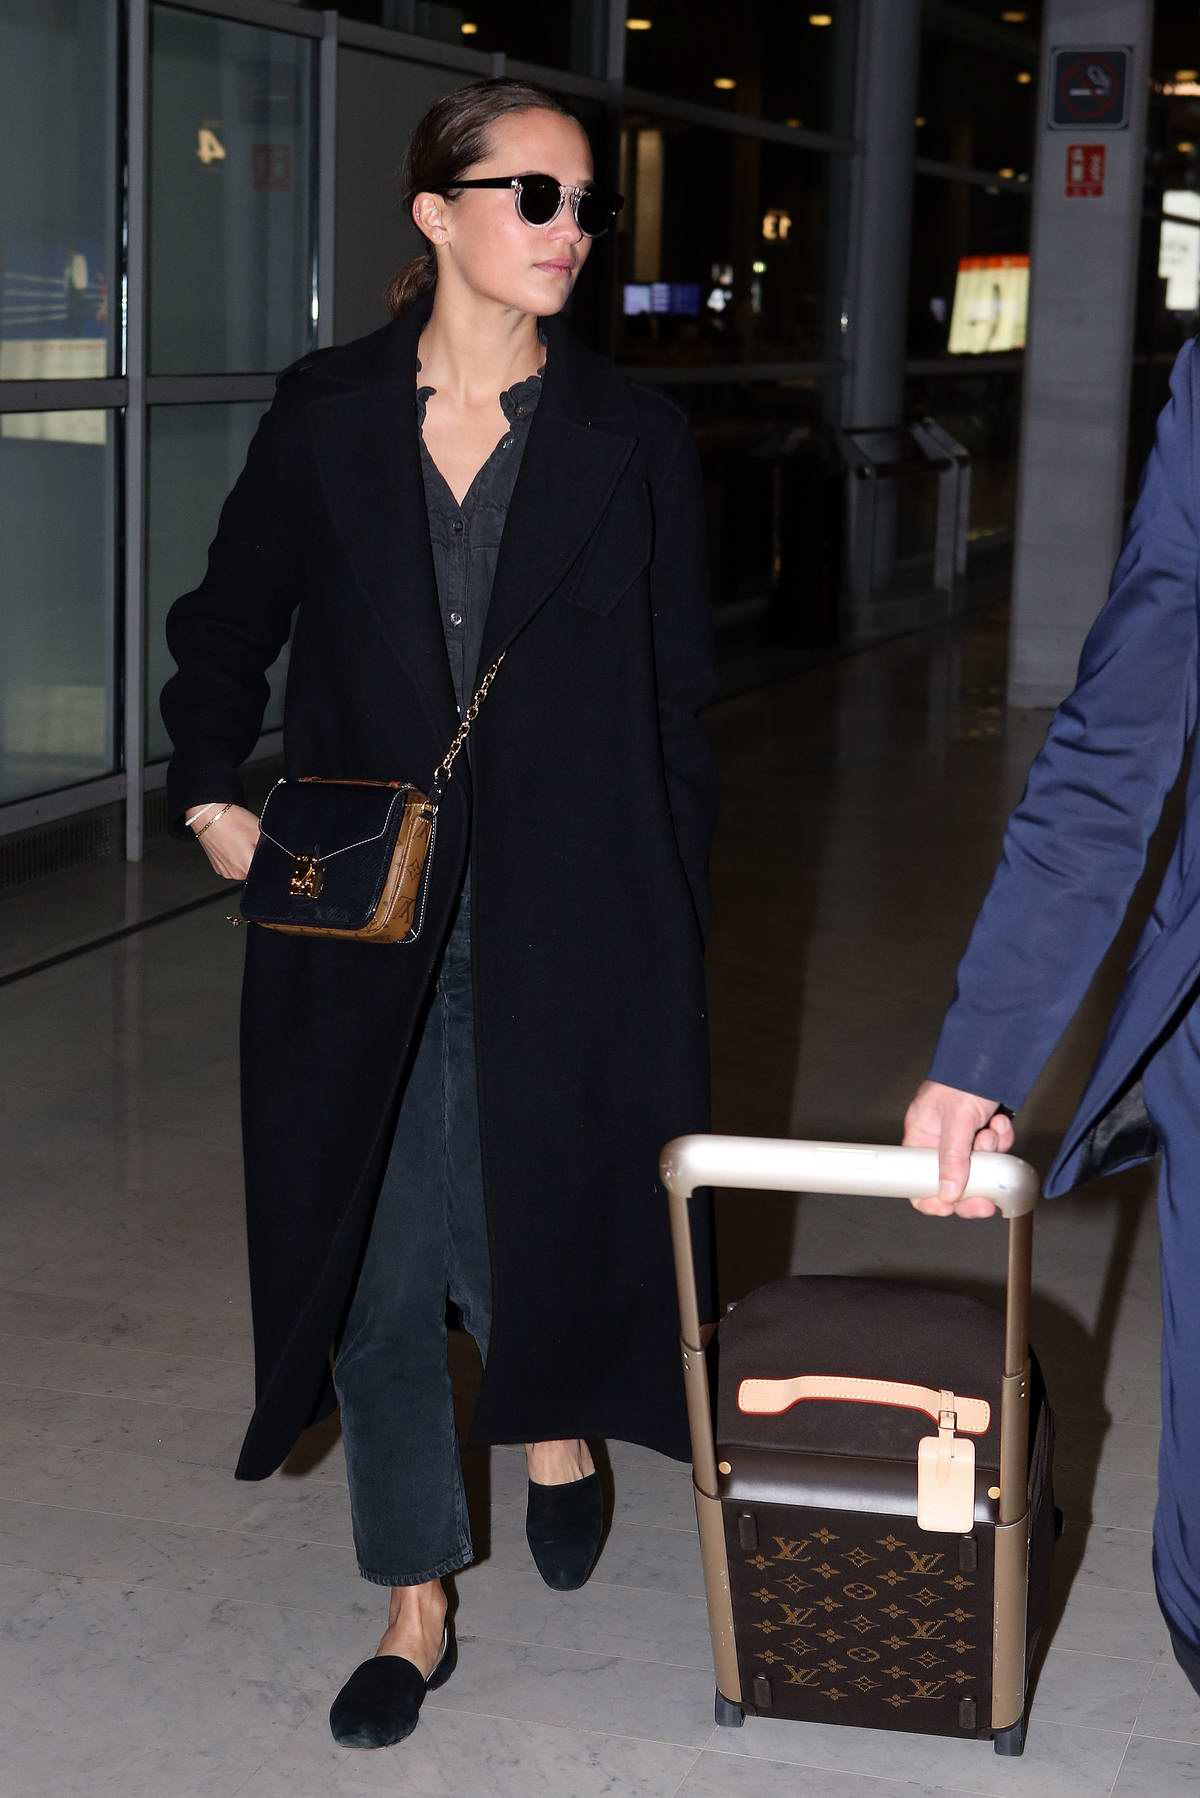 Alicia Vikander seen wearing a denim jumpsuit with black long coat as she arrives CDG airport in Paris, France